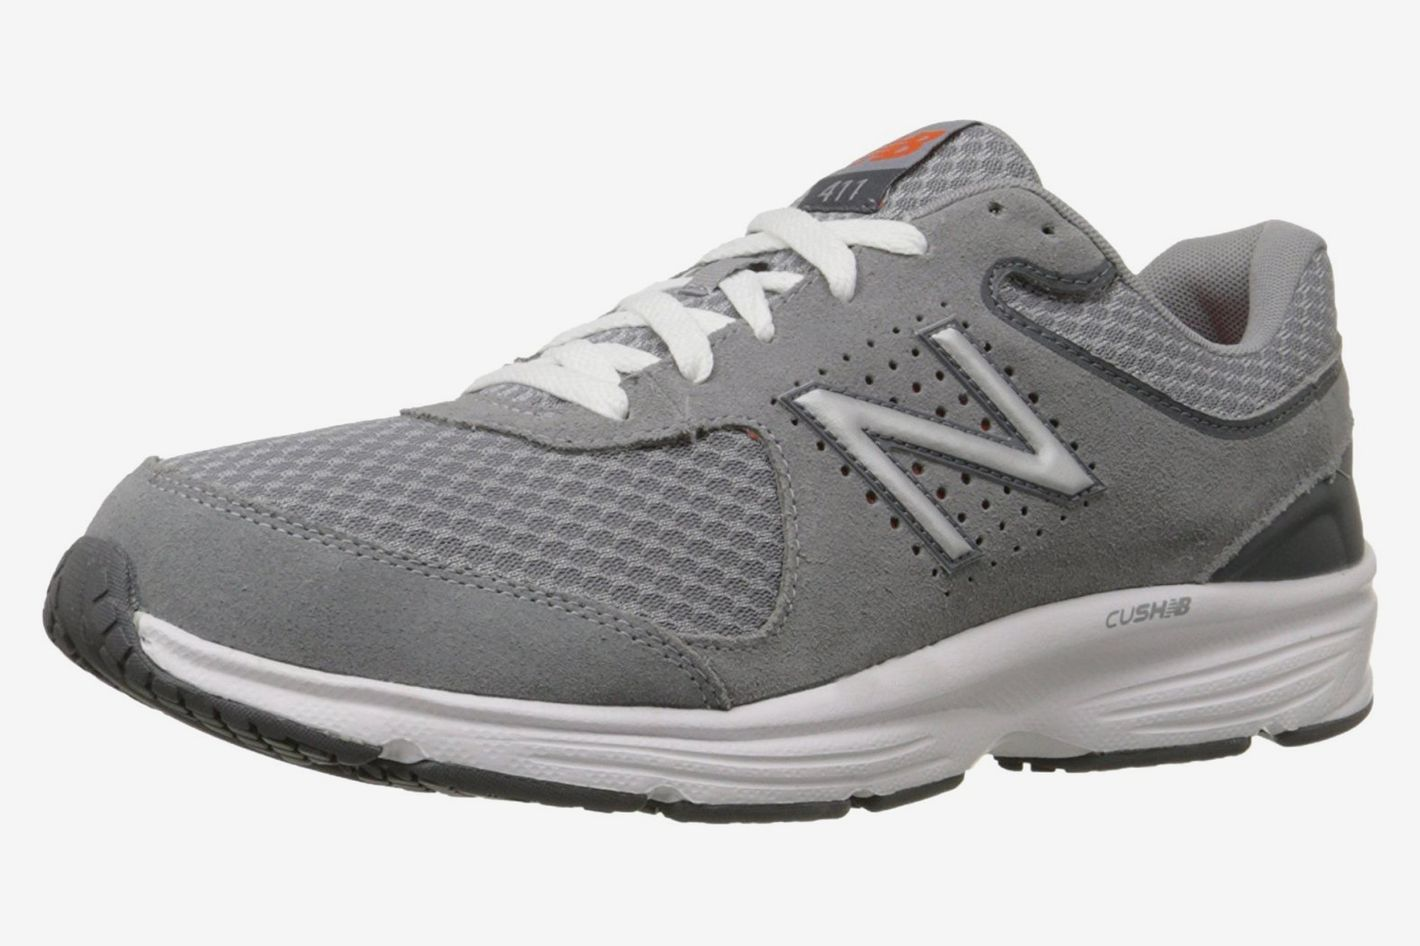 New Balance Men S Walking Shoes